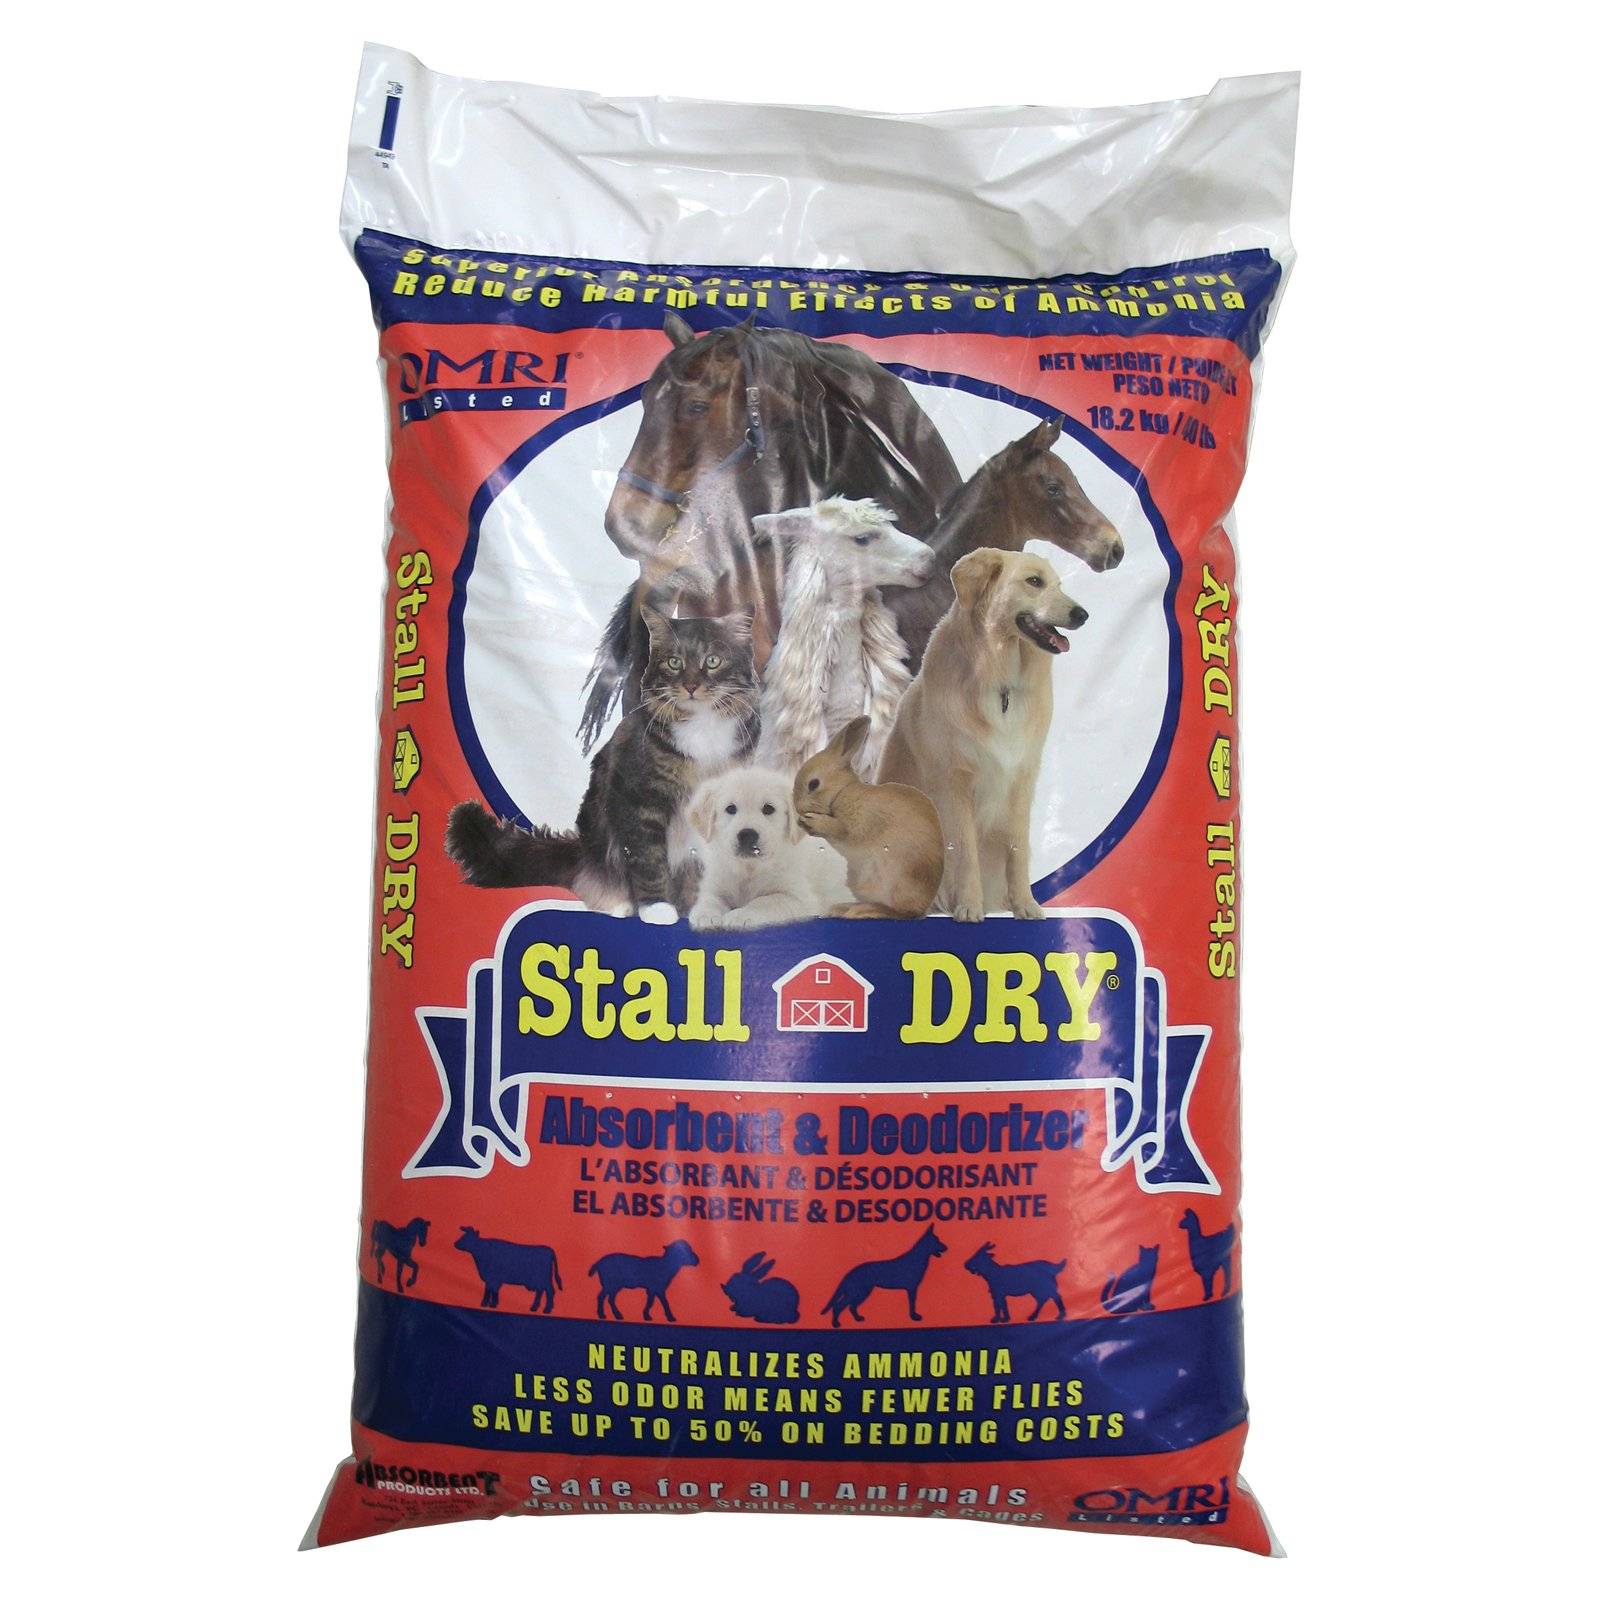 Absorbent Products Stall Dry Deodorizer